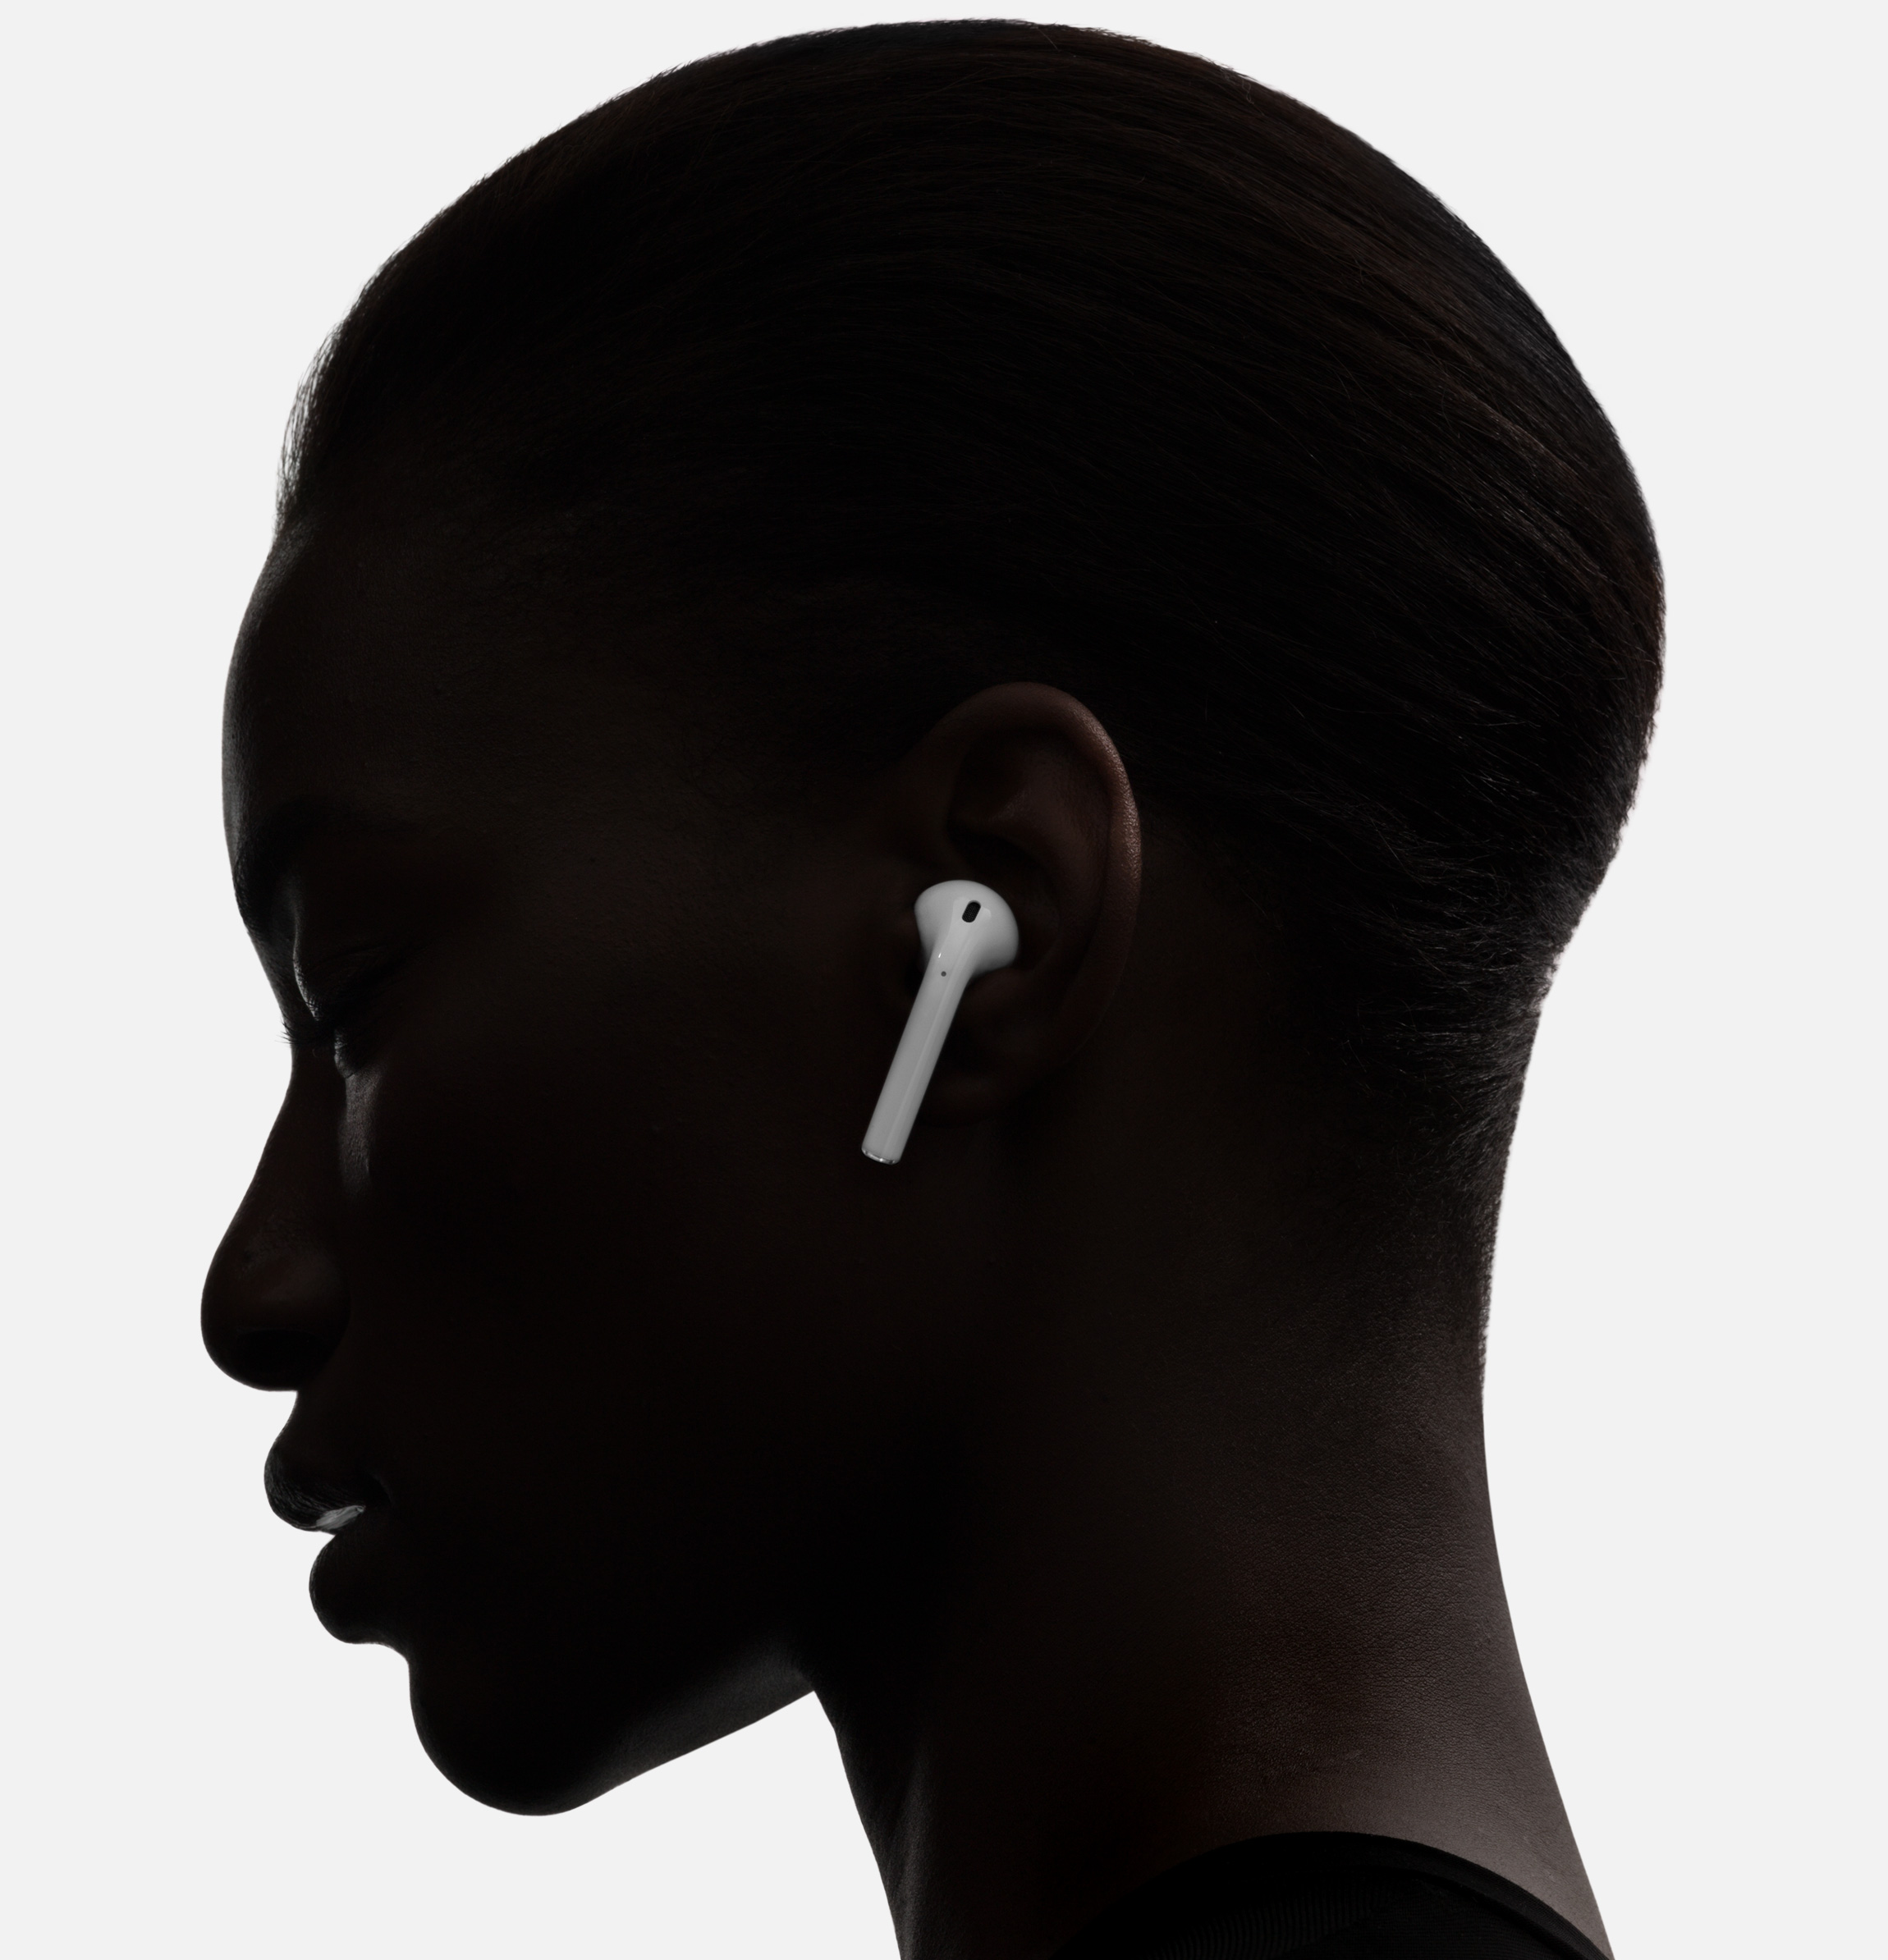 AirPods mono audio